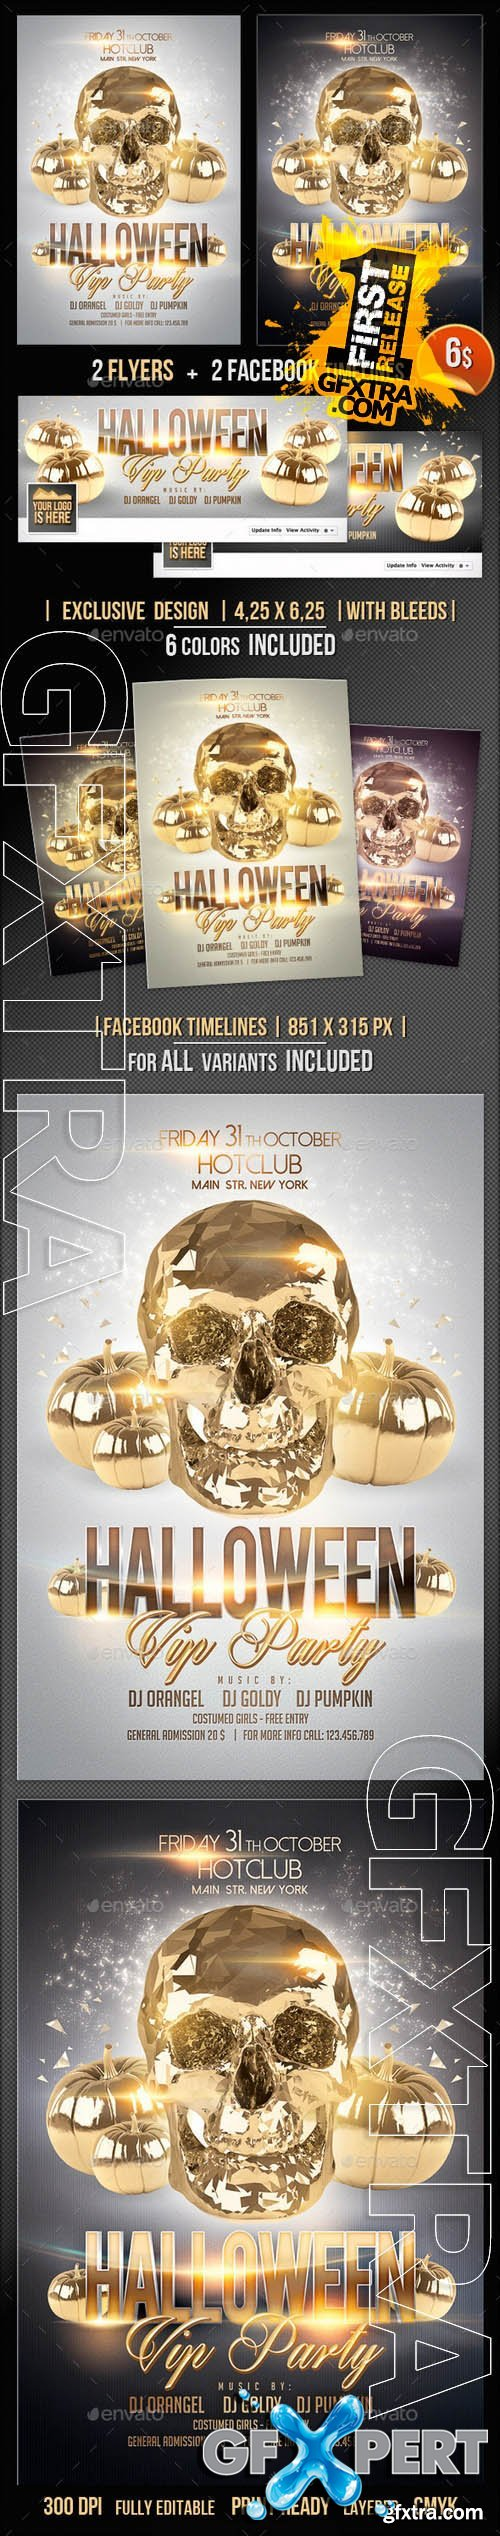 Halloween Flyer + Fb Timeline Vip Party - Graphicriver 9114413